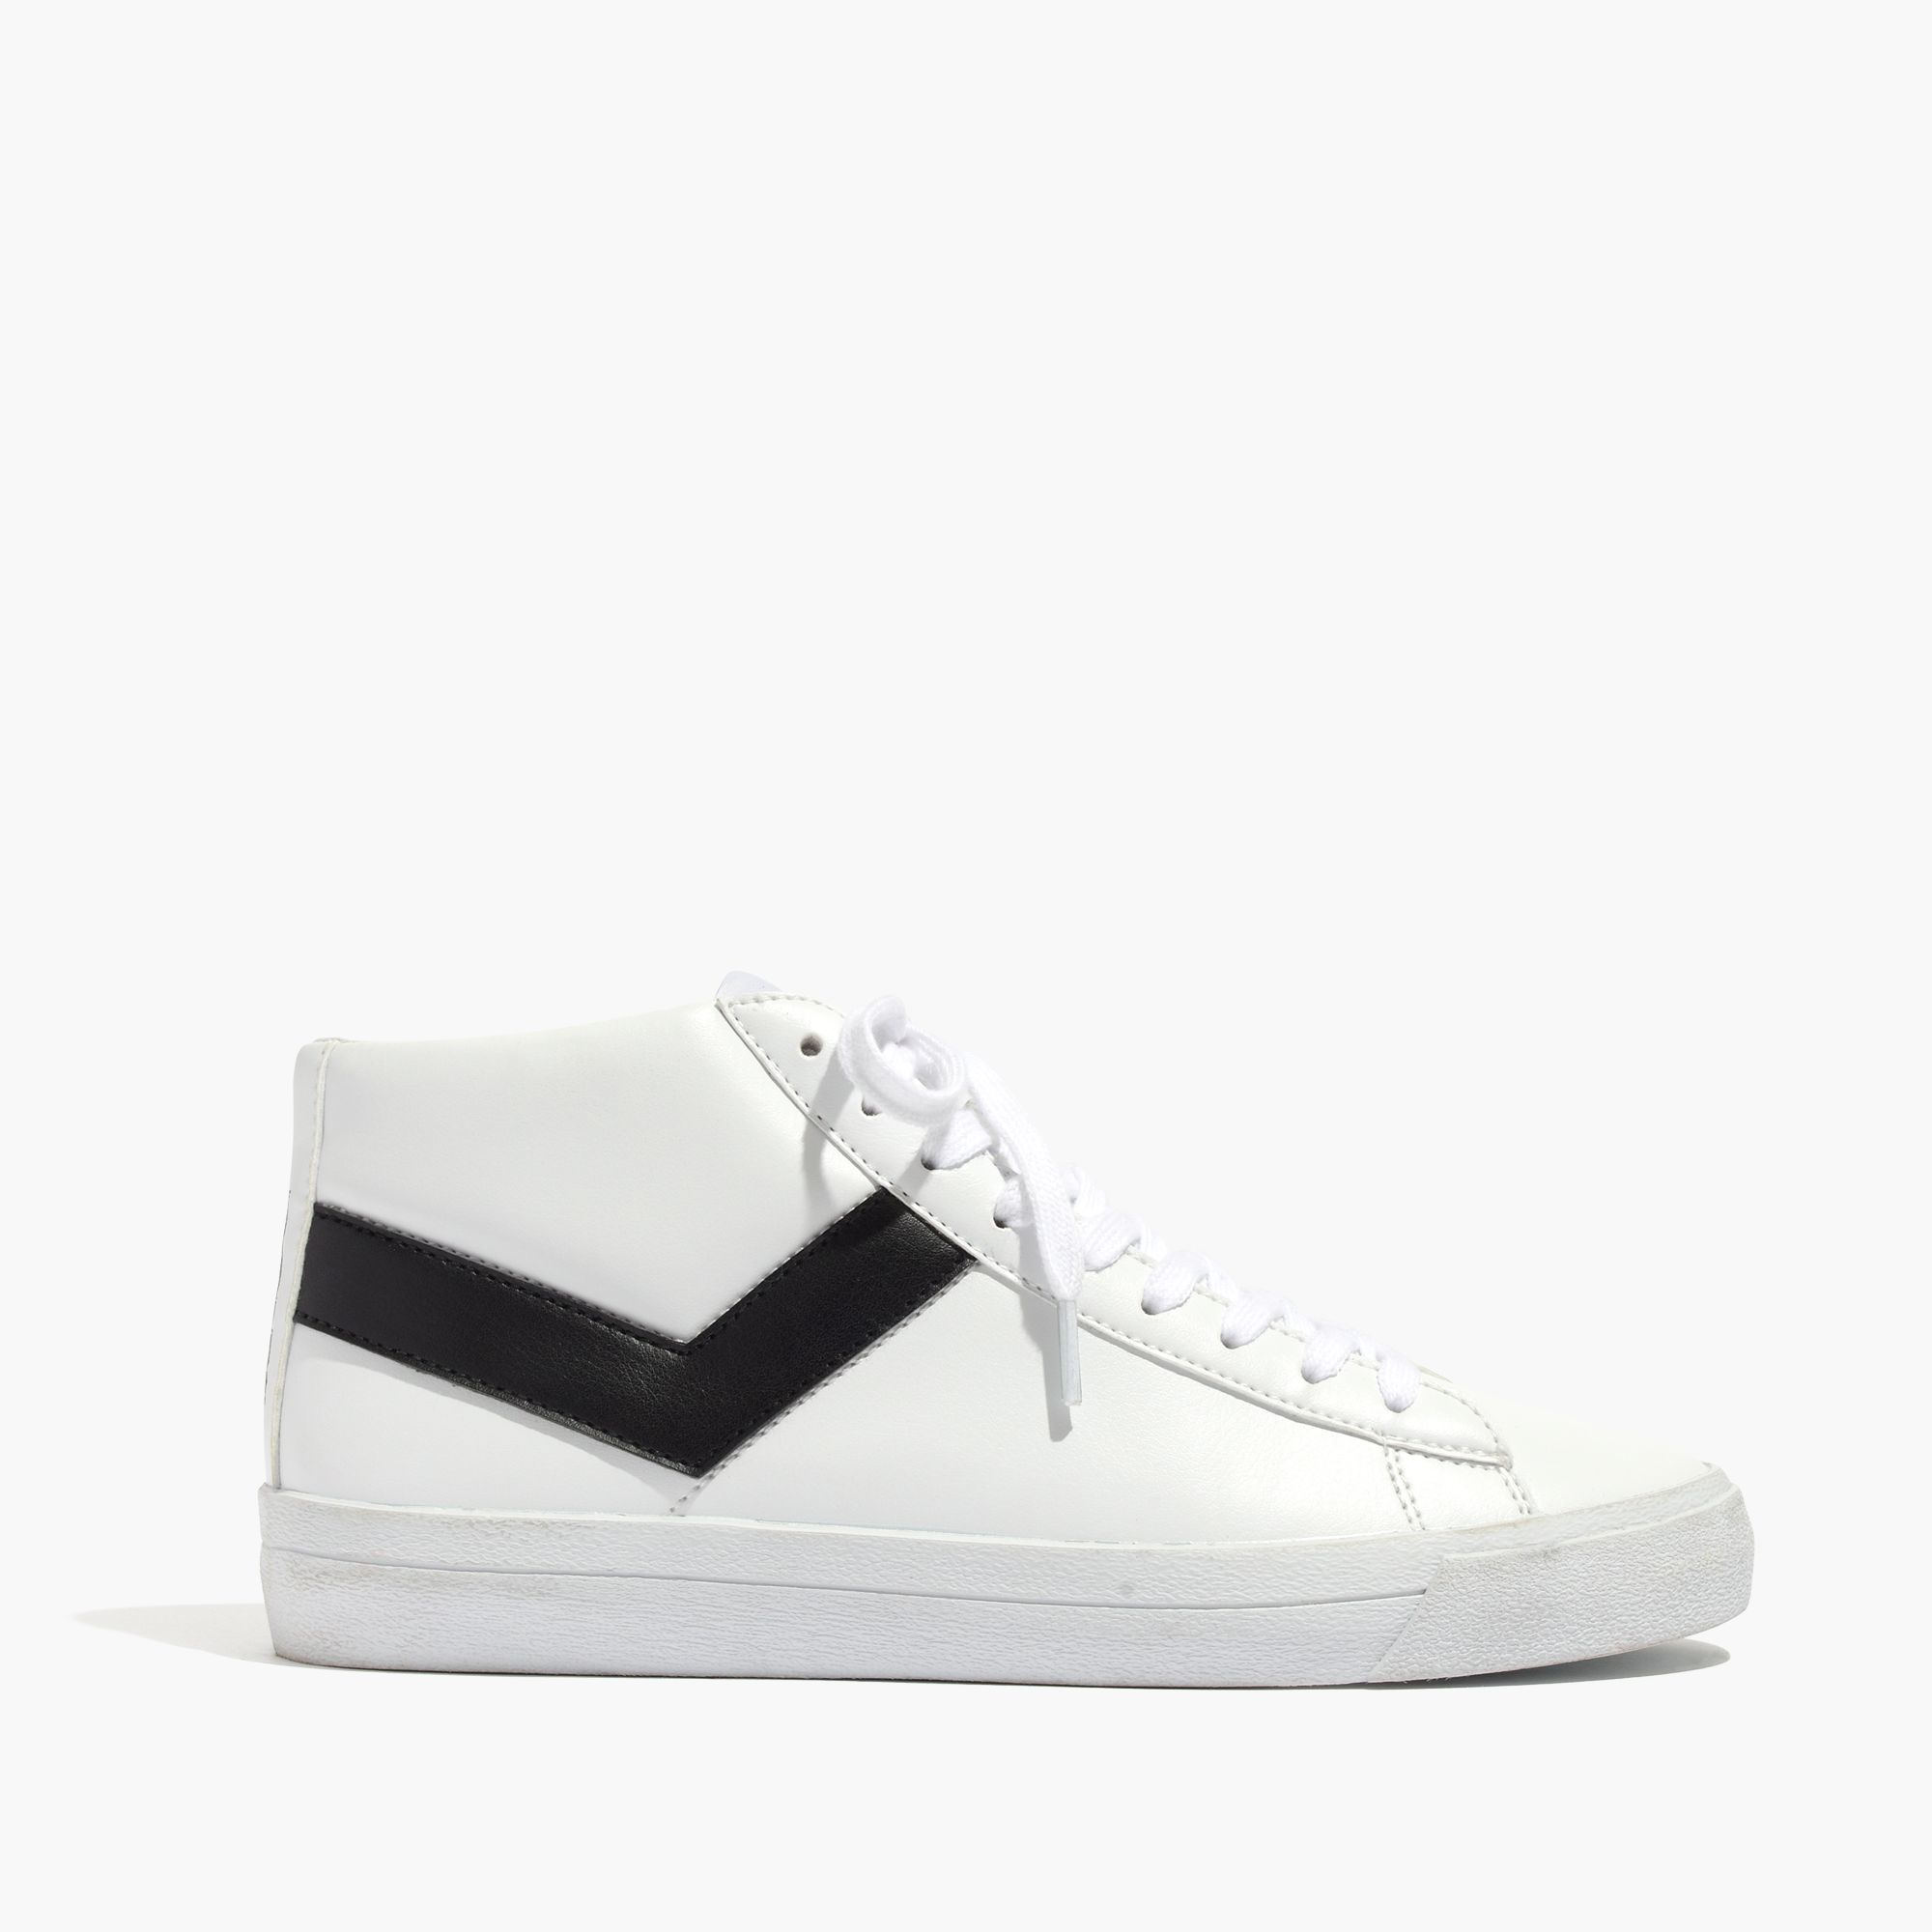 madewell pony 174 topstar hi high top sneakers in white lyst